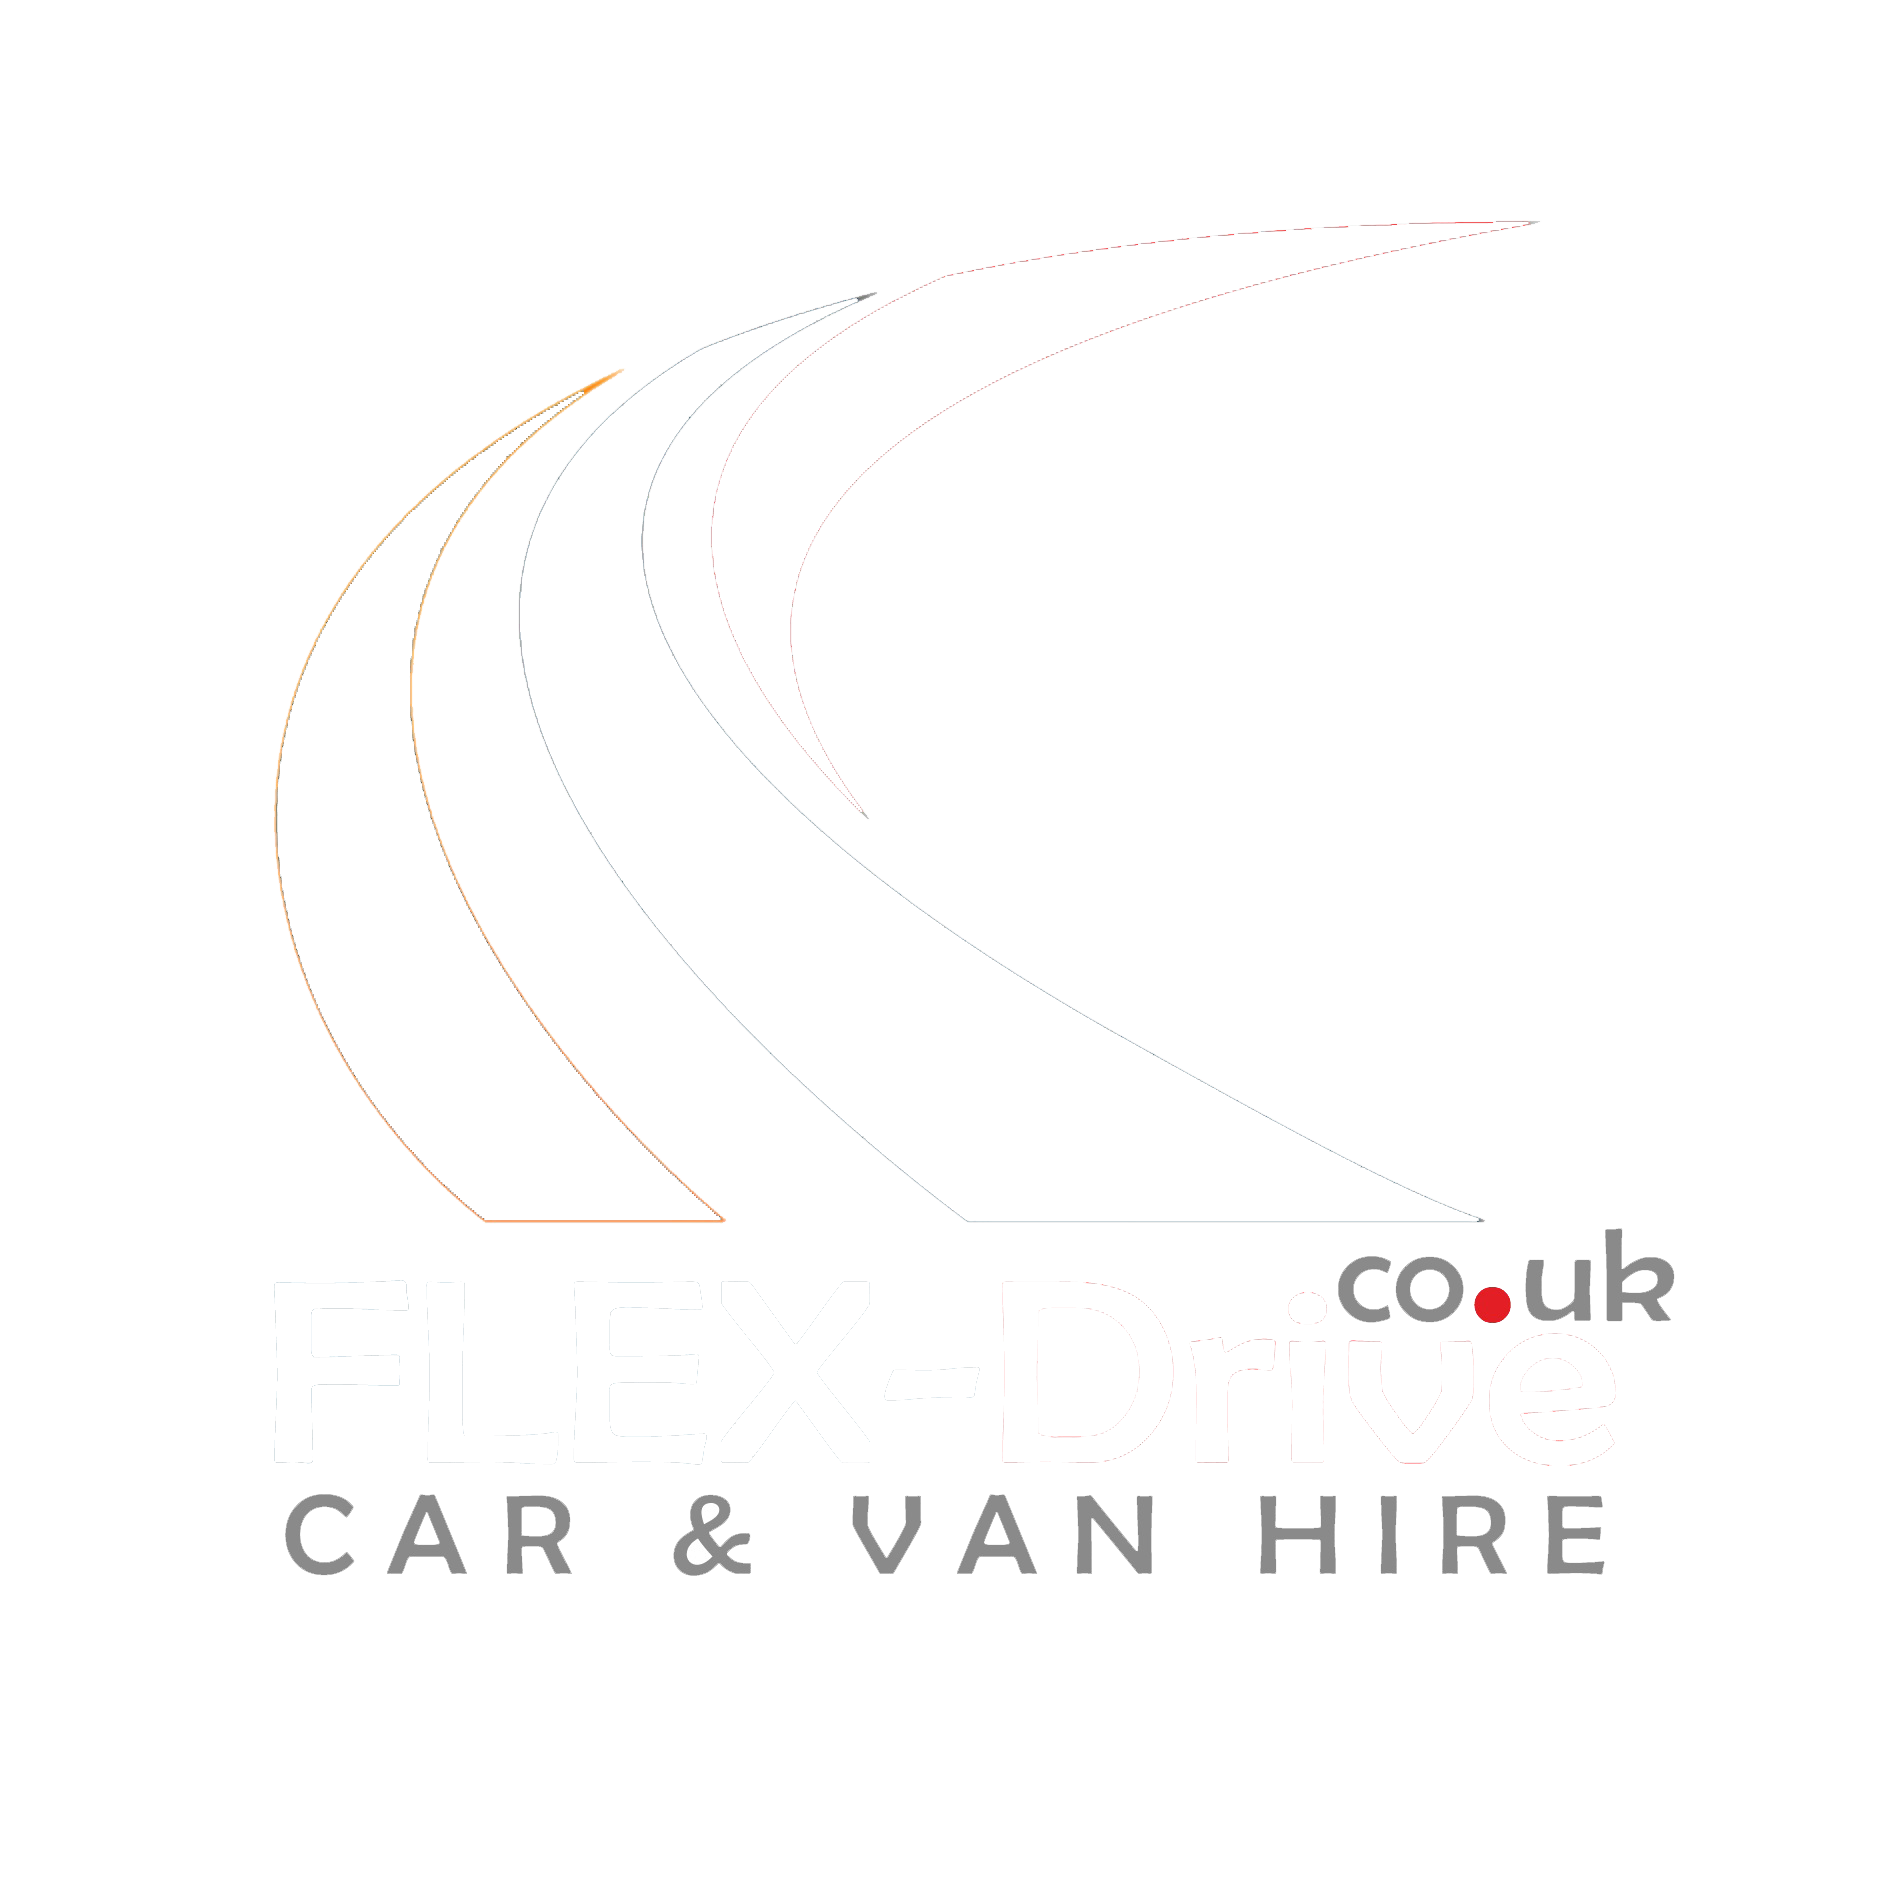 Flex-Drive Car & Van Hire Company in London Logo